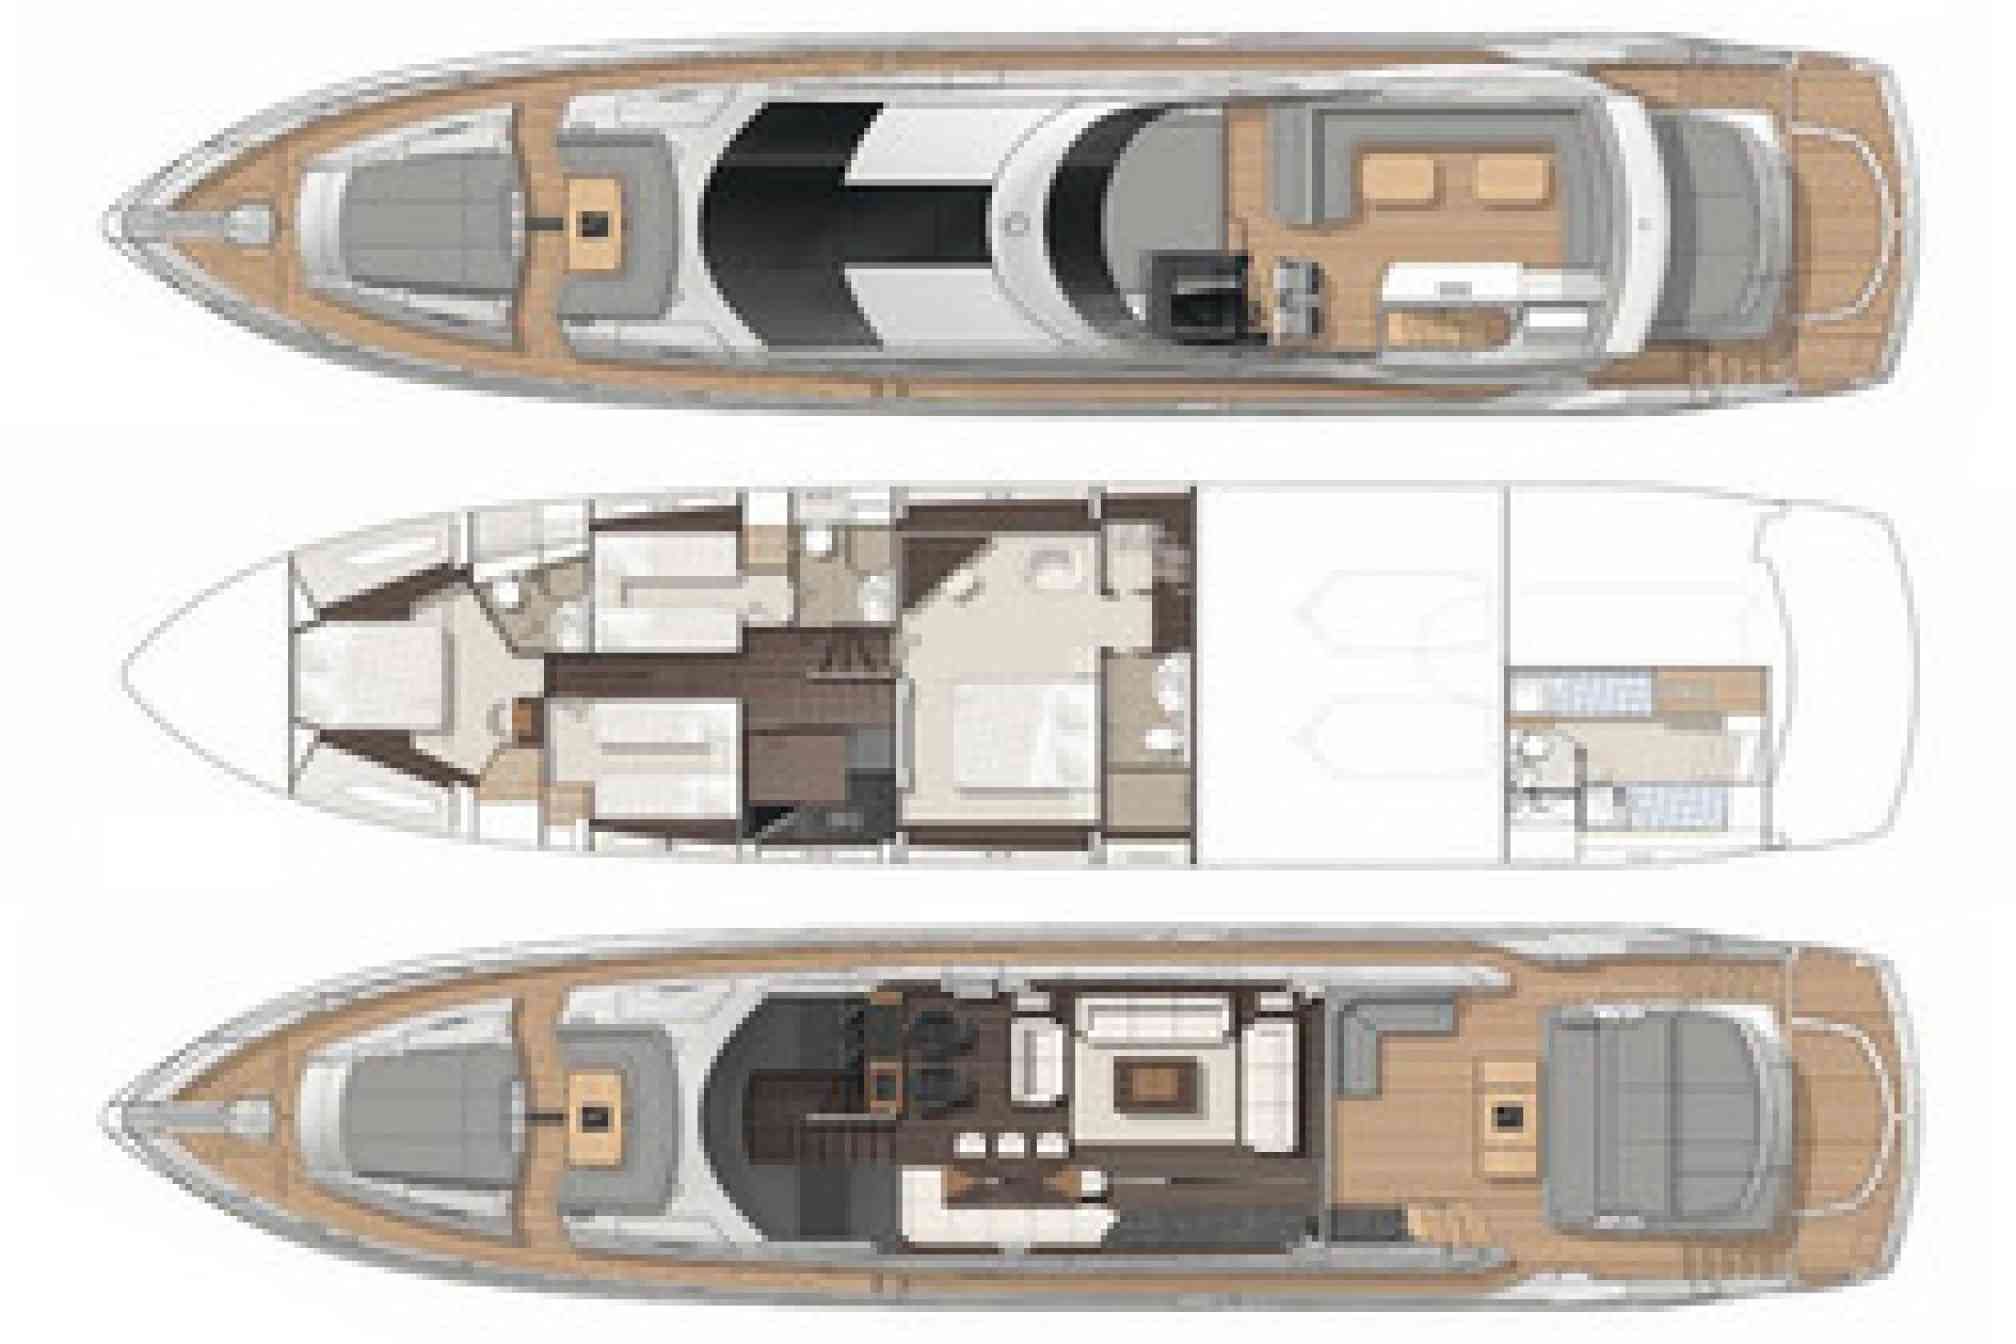 Sunseeker 80 charter yacht layout